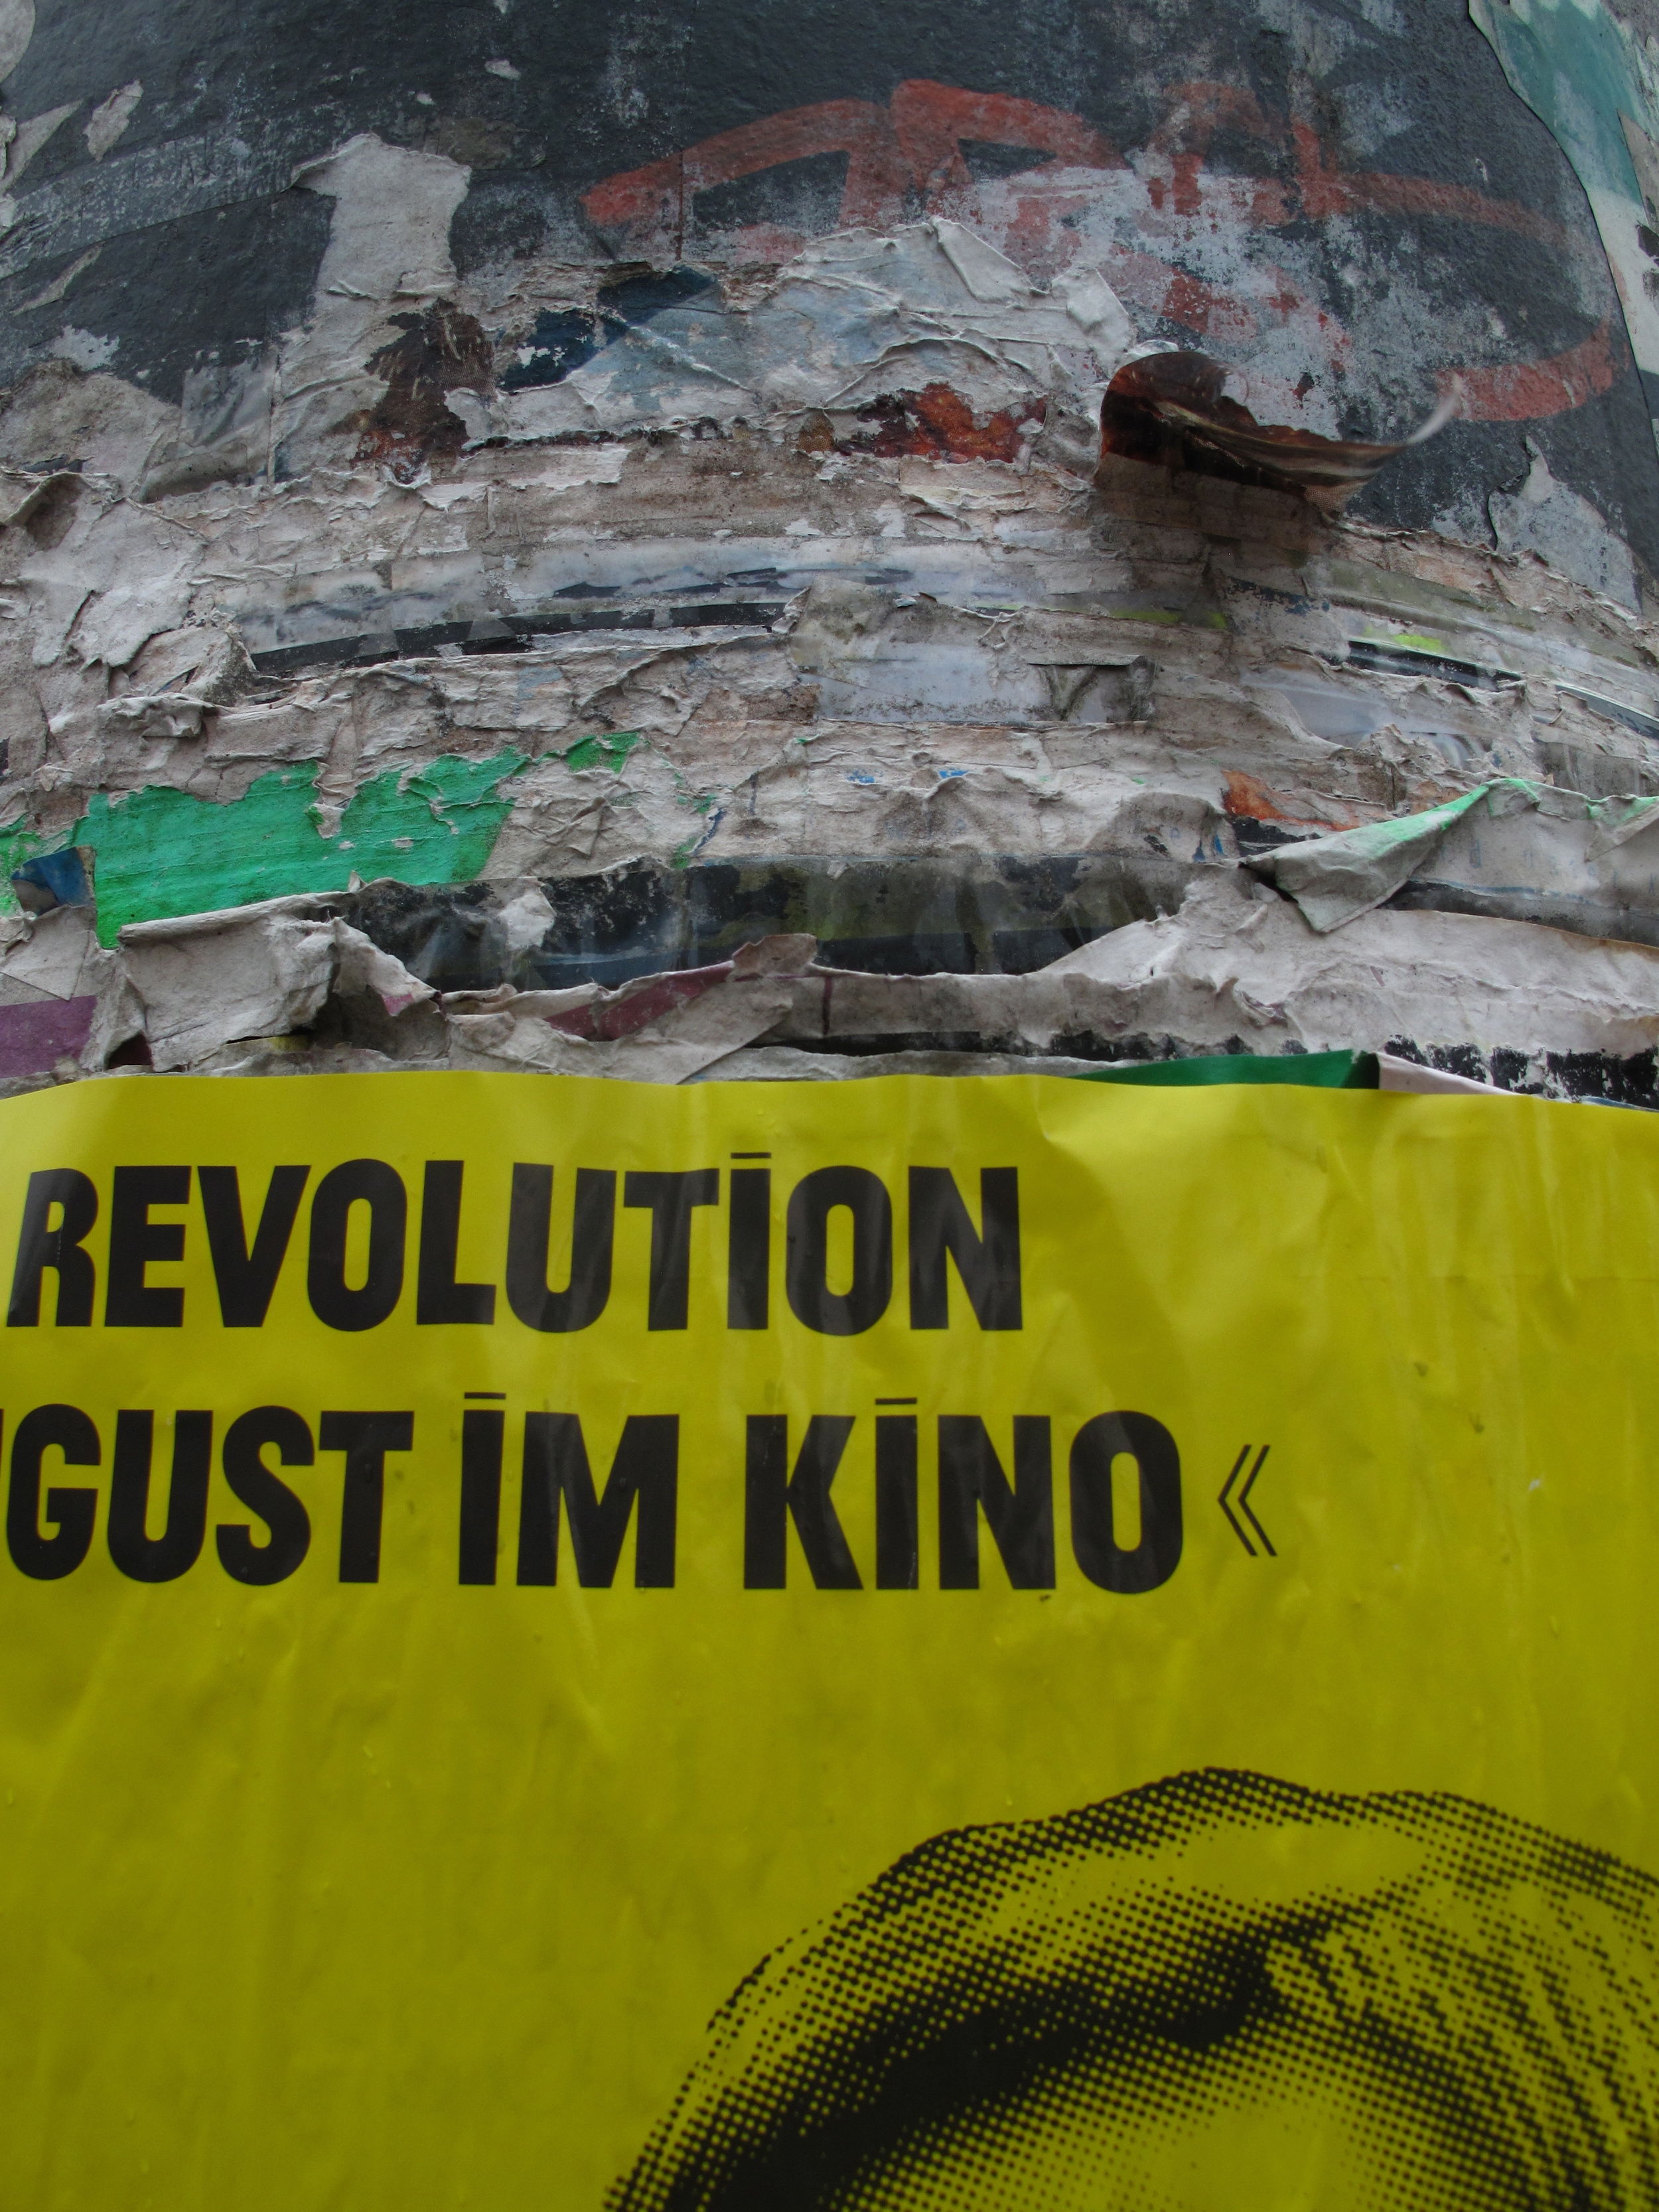 Layers and layers of posters on a lamp post, in Berlin.